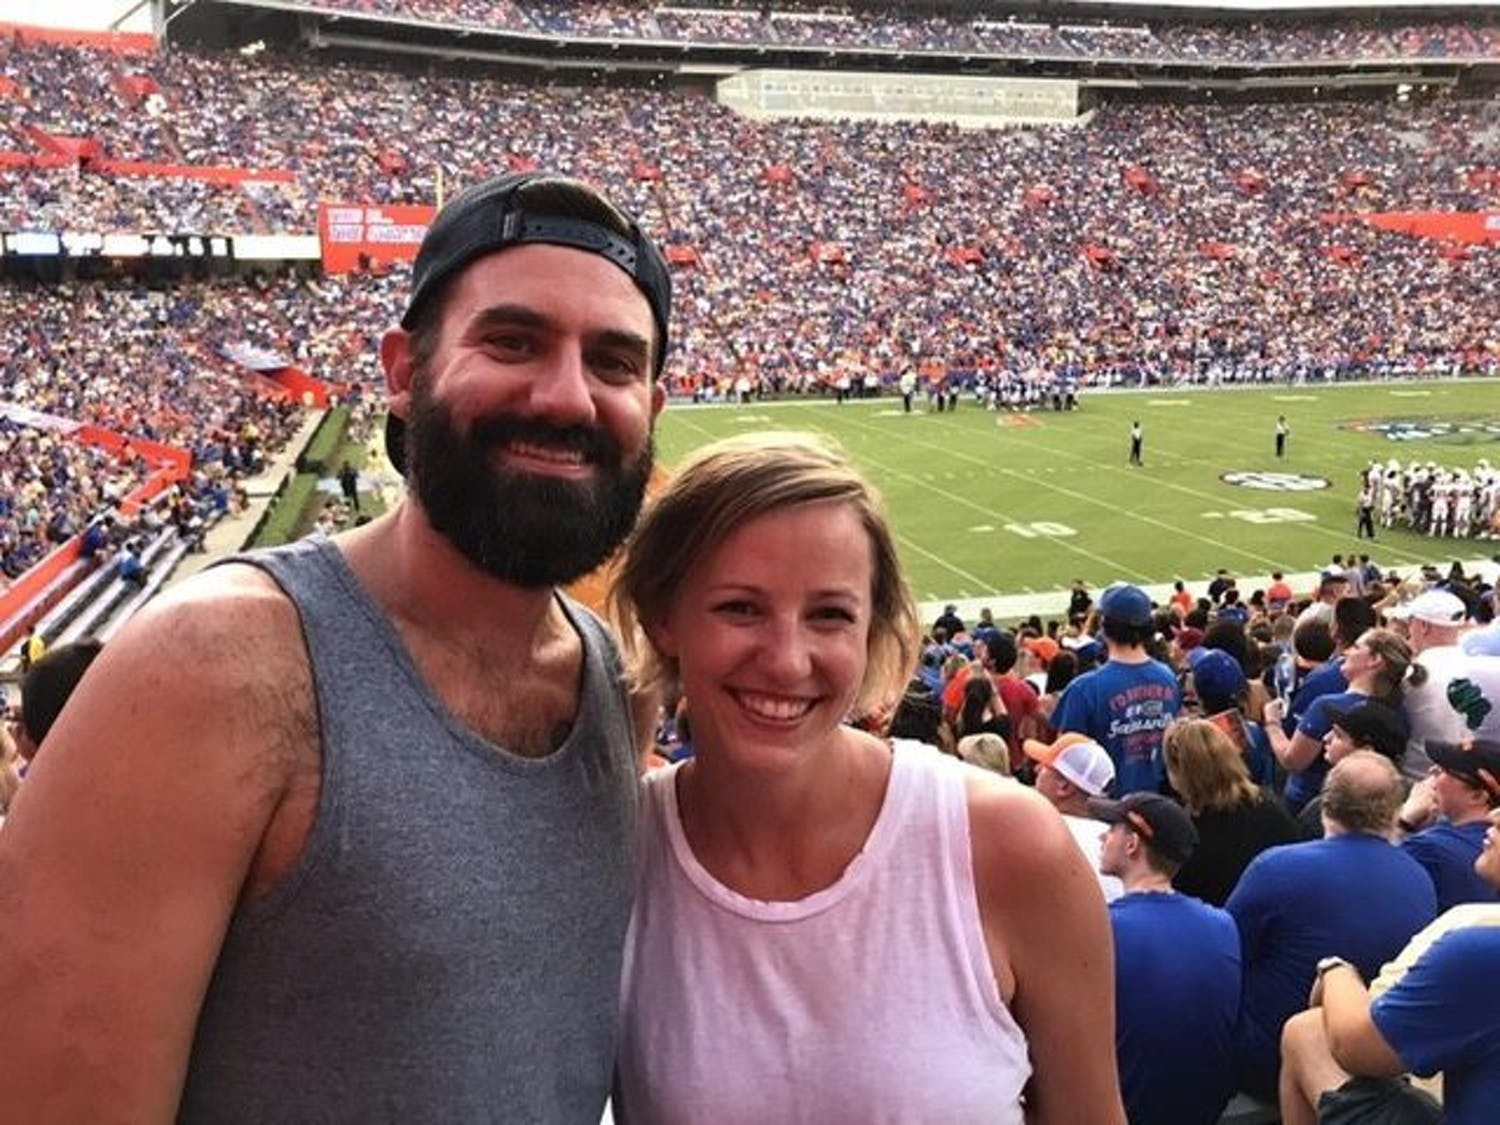 Matthew Baldwin and Stephanie Rüegg at the Gator football game against University of Tennessee-Martin on Sept. 7, 2019. This was Rüegg's first-ever American football game she attended.